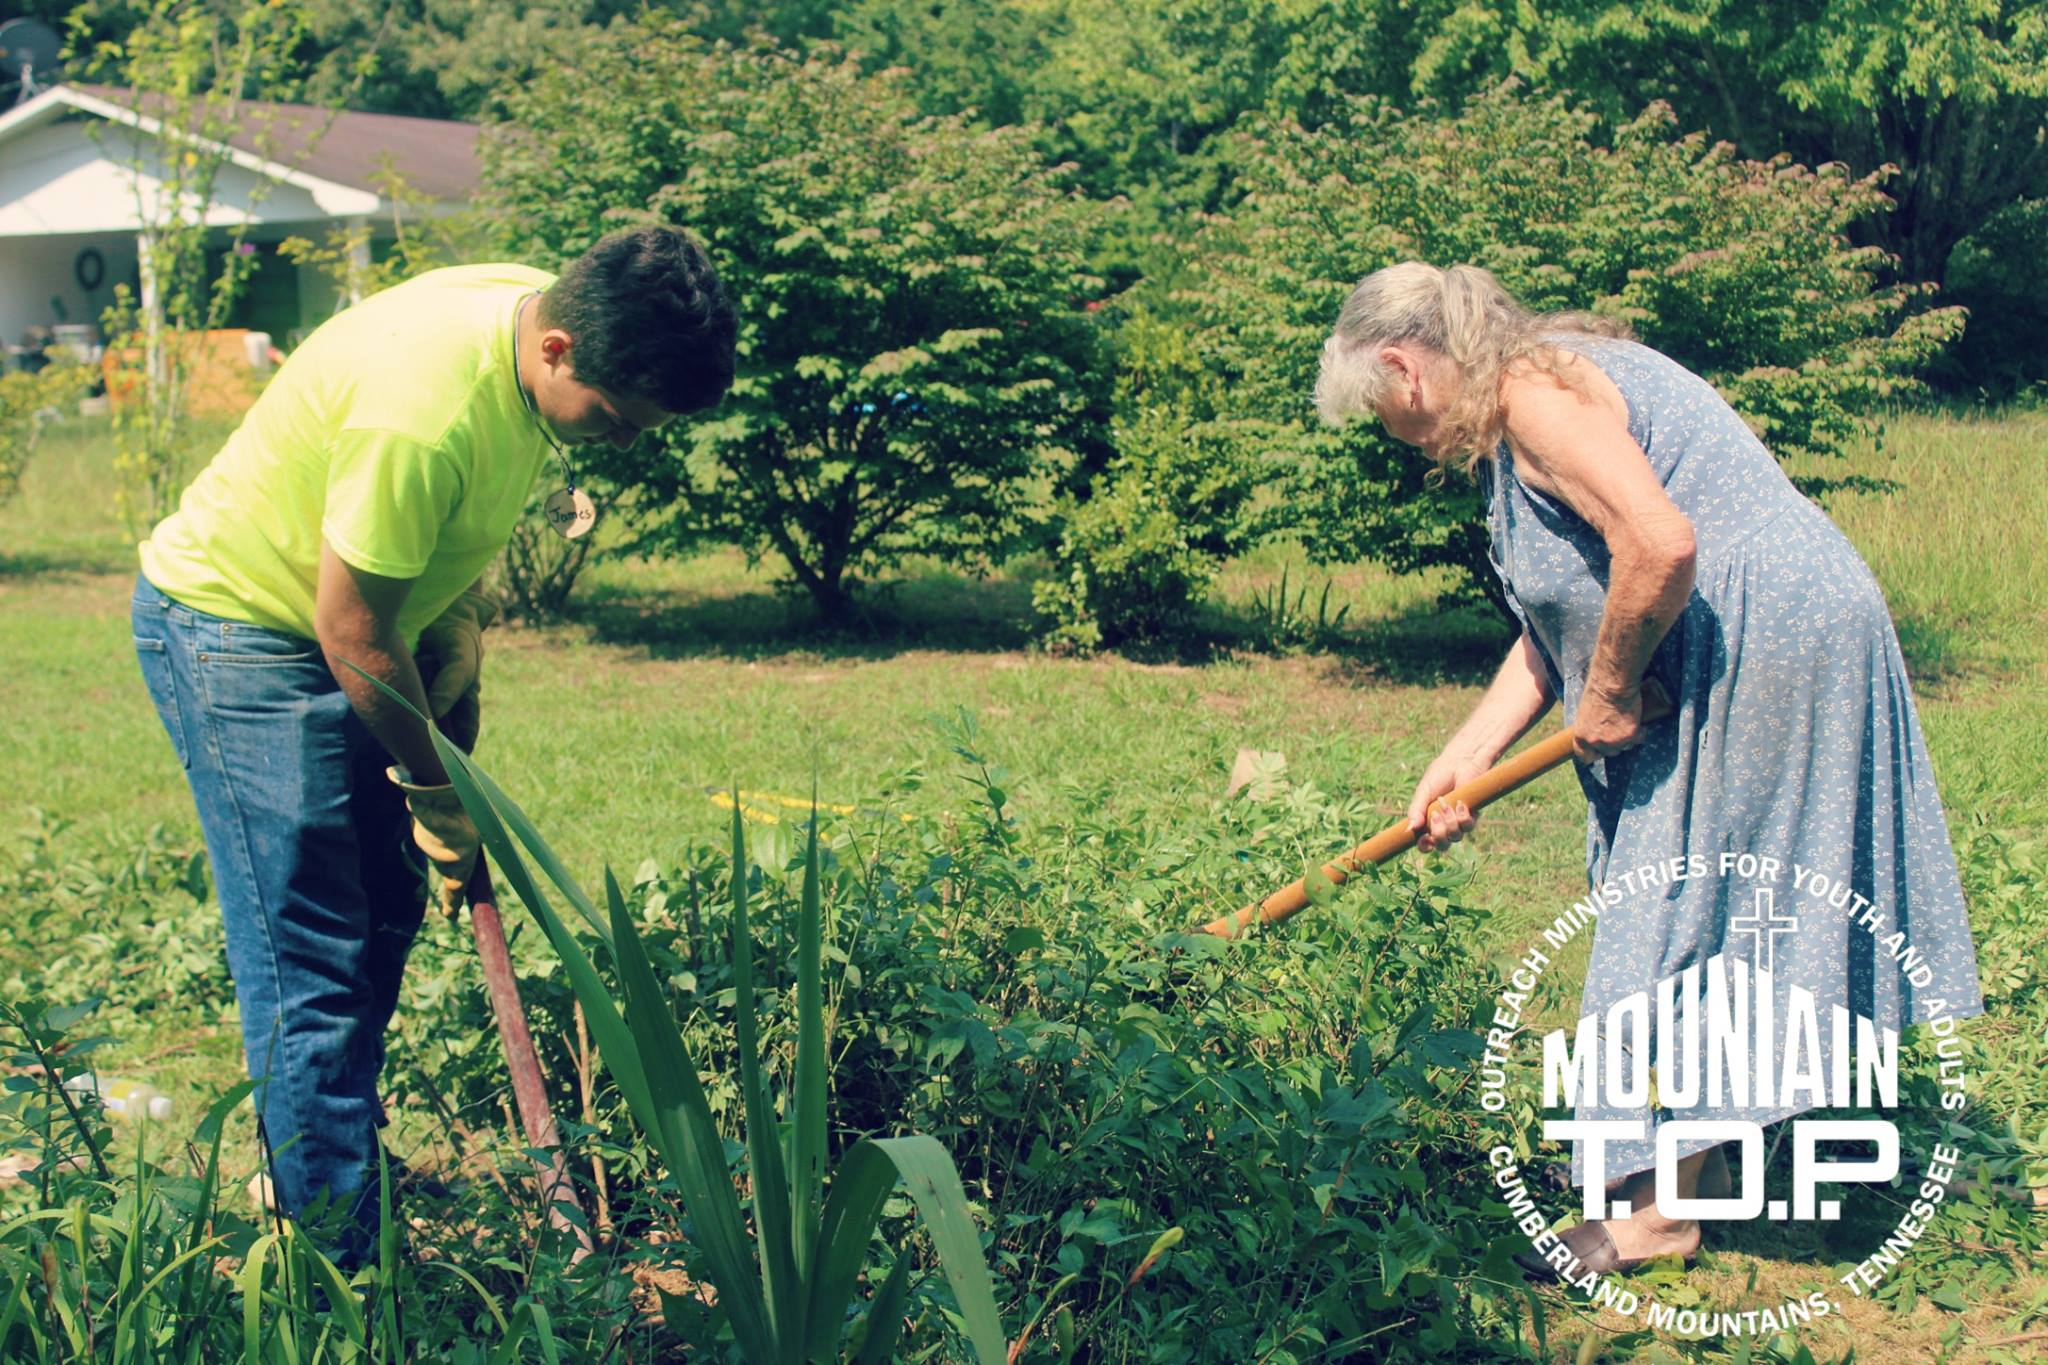 Mountain Top project - two people working in a garden